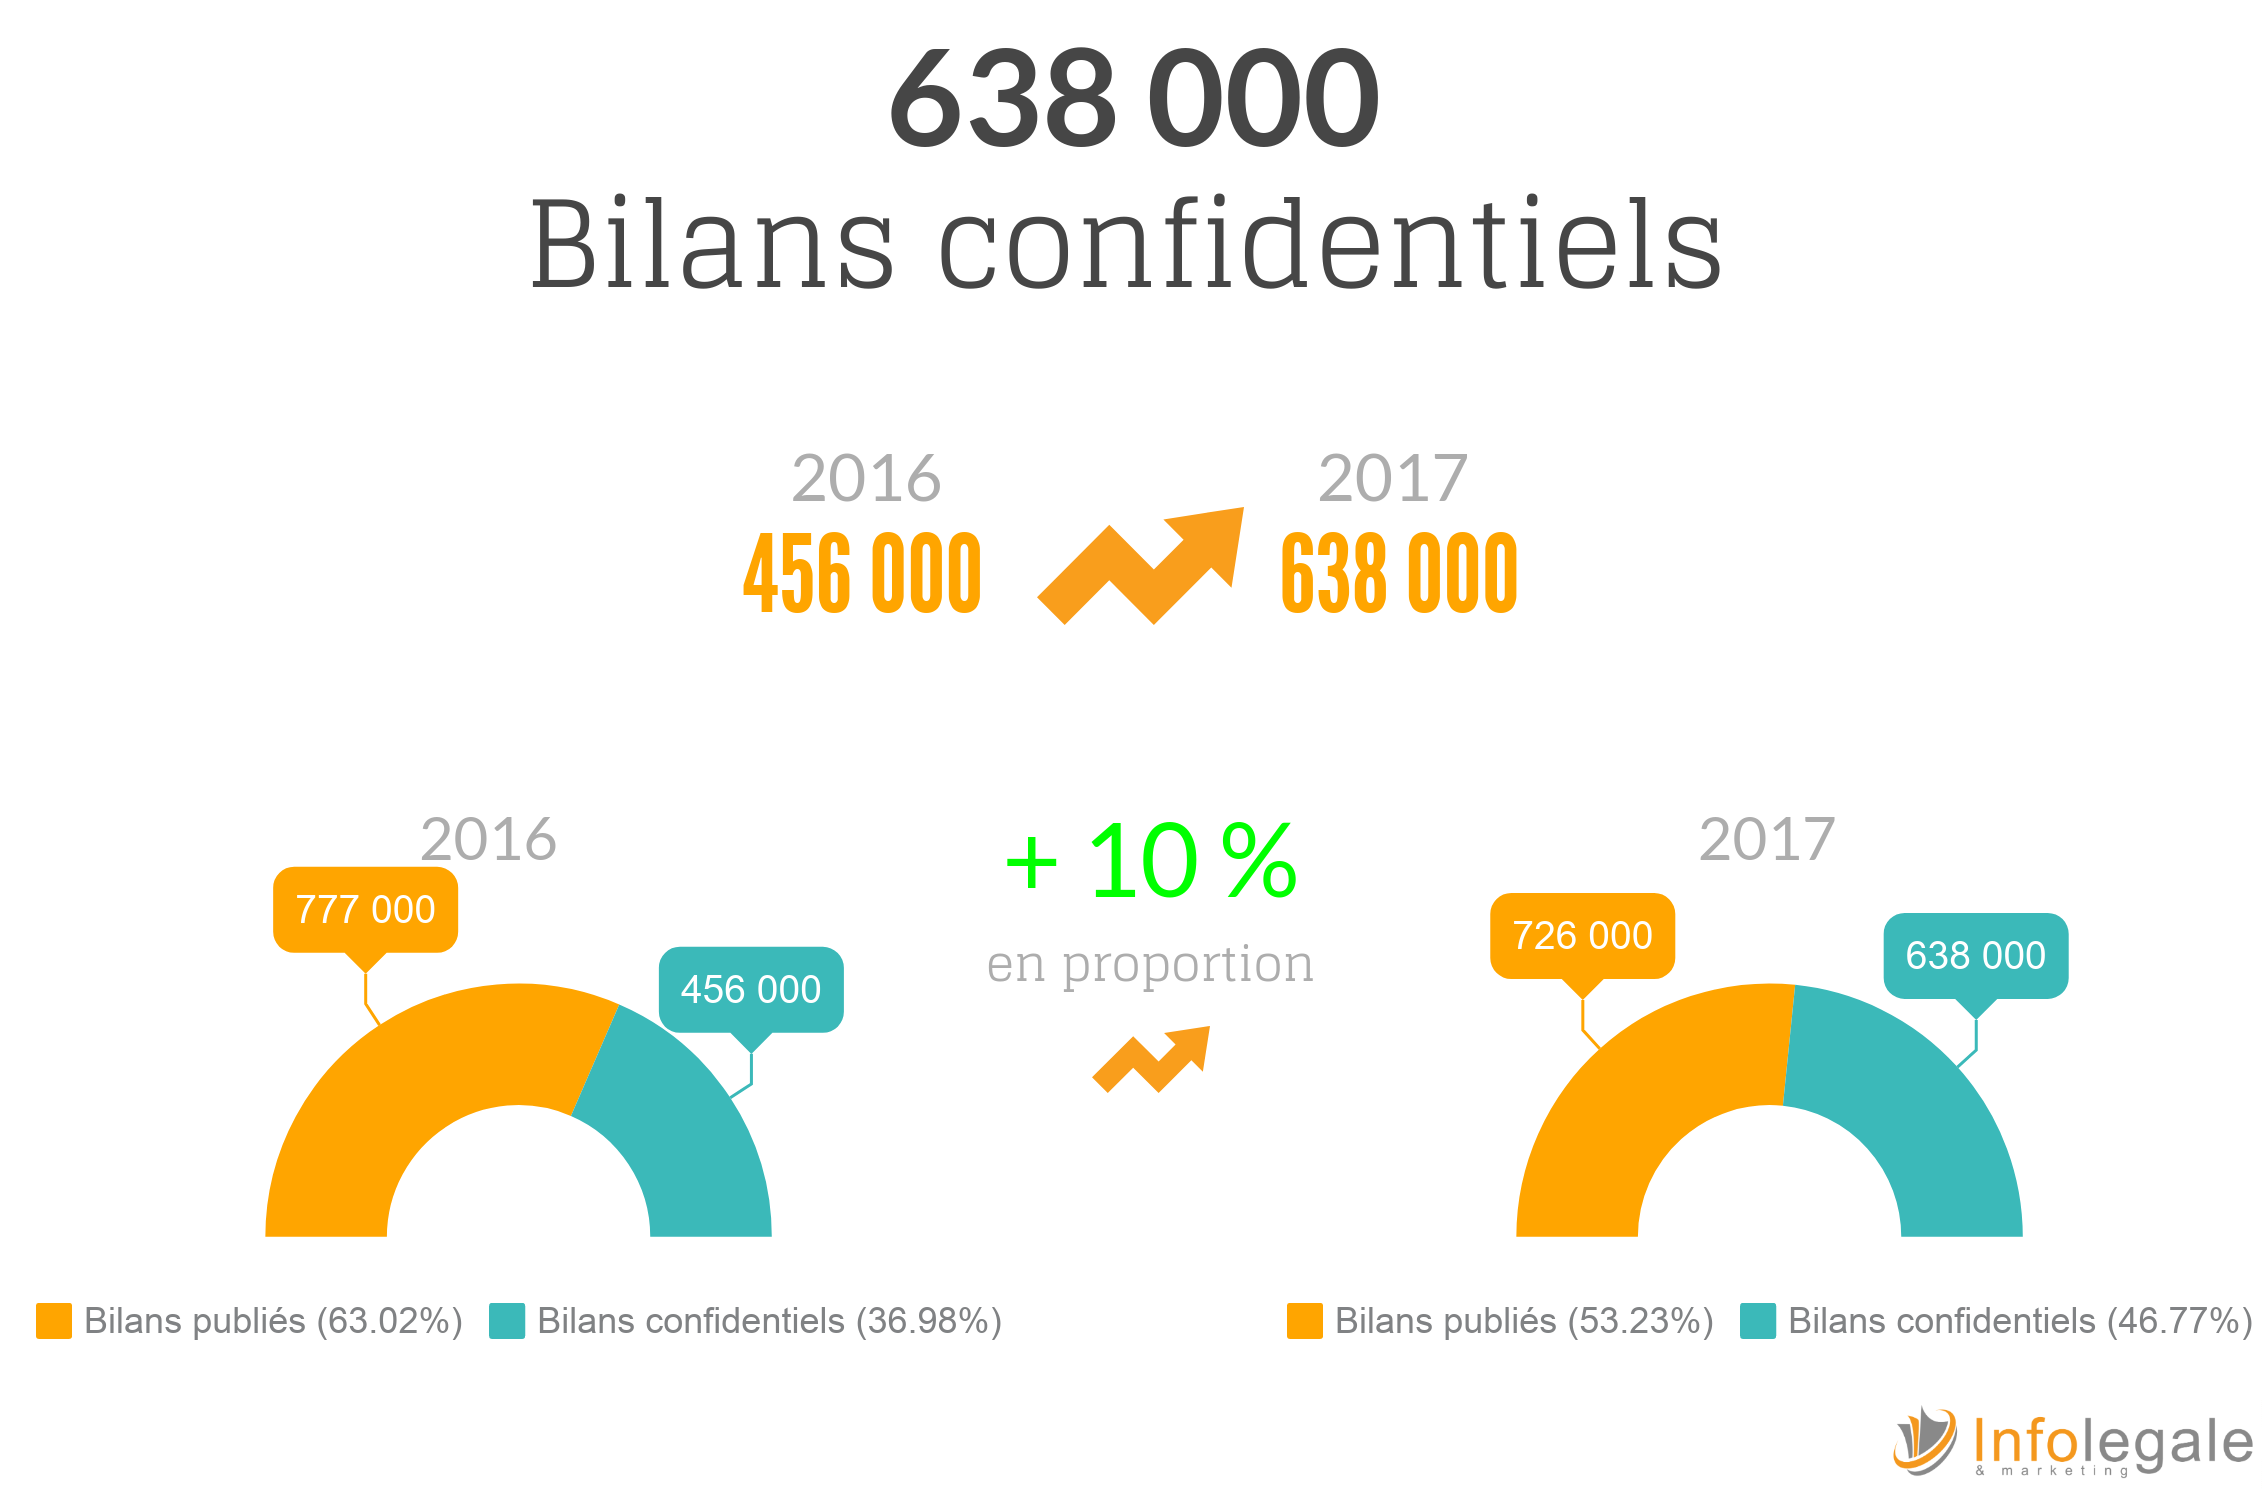 bilans confidentiels : succes du dispositif